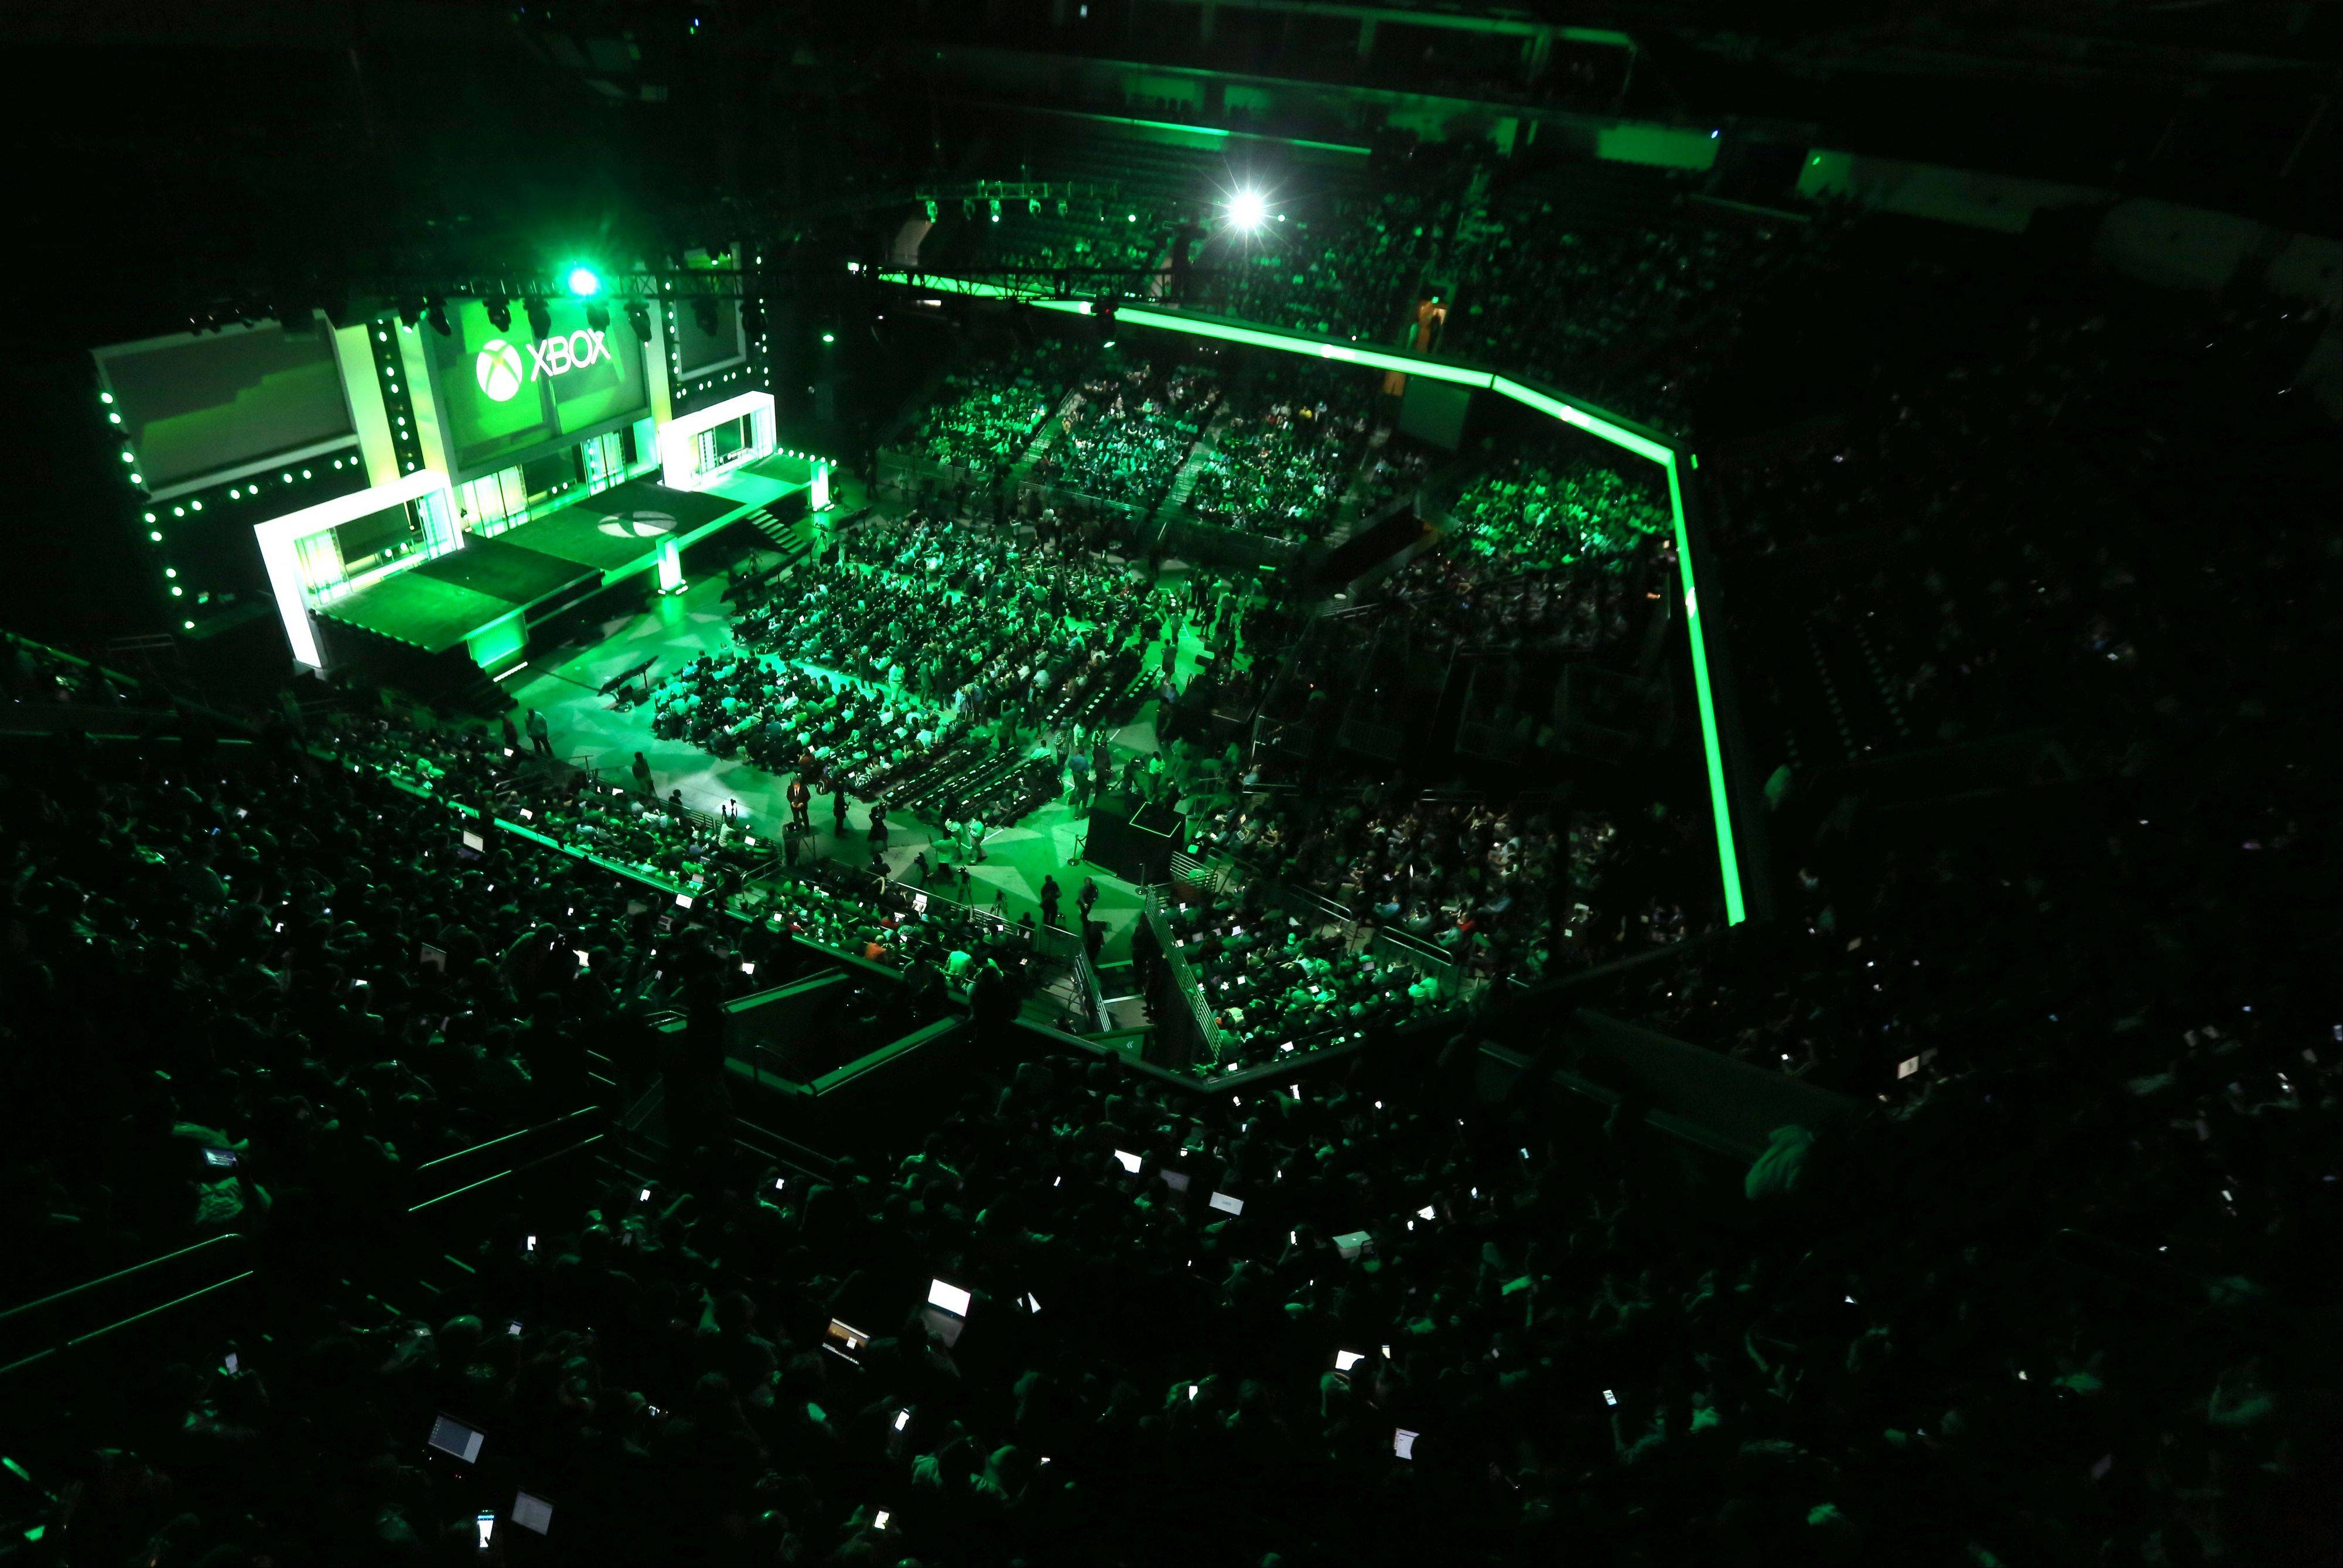 Microsoft makes pitch to gamers with Xbox One E3 presentation